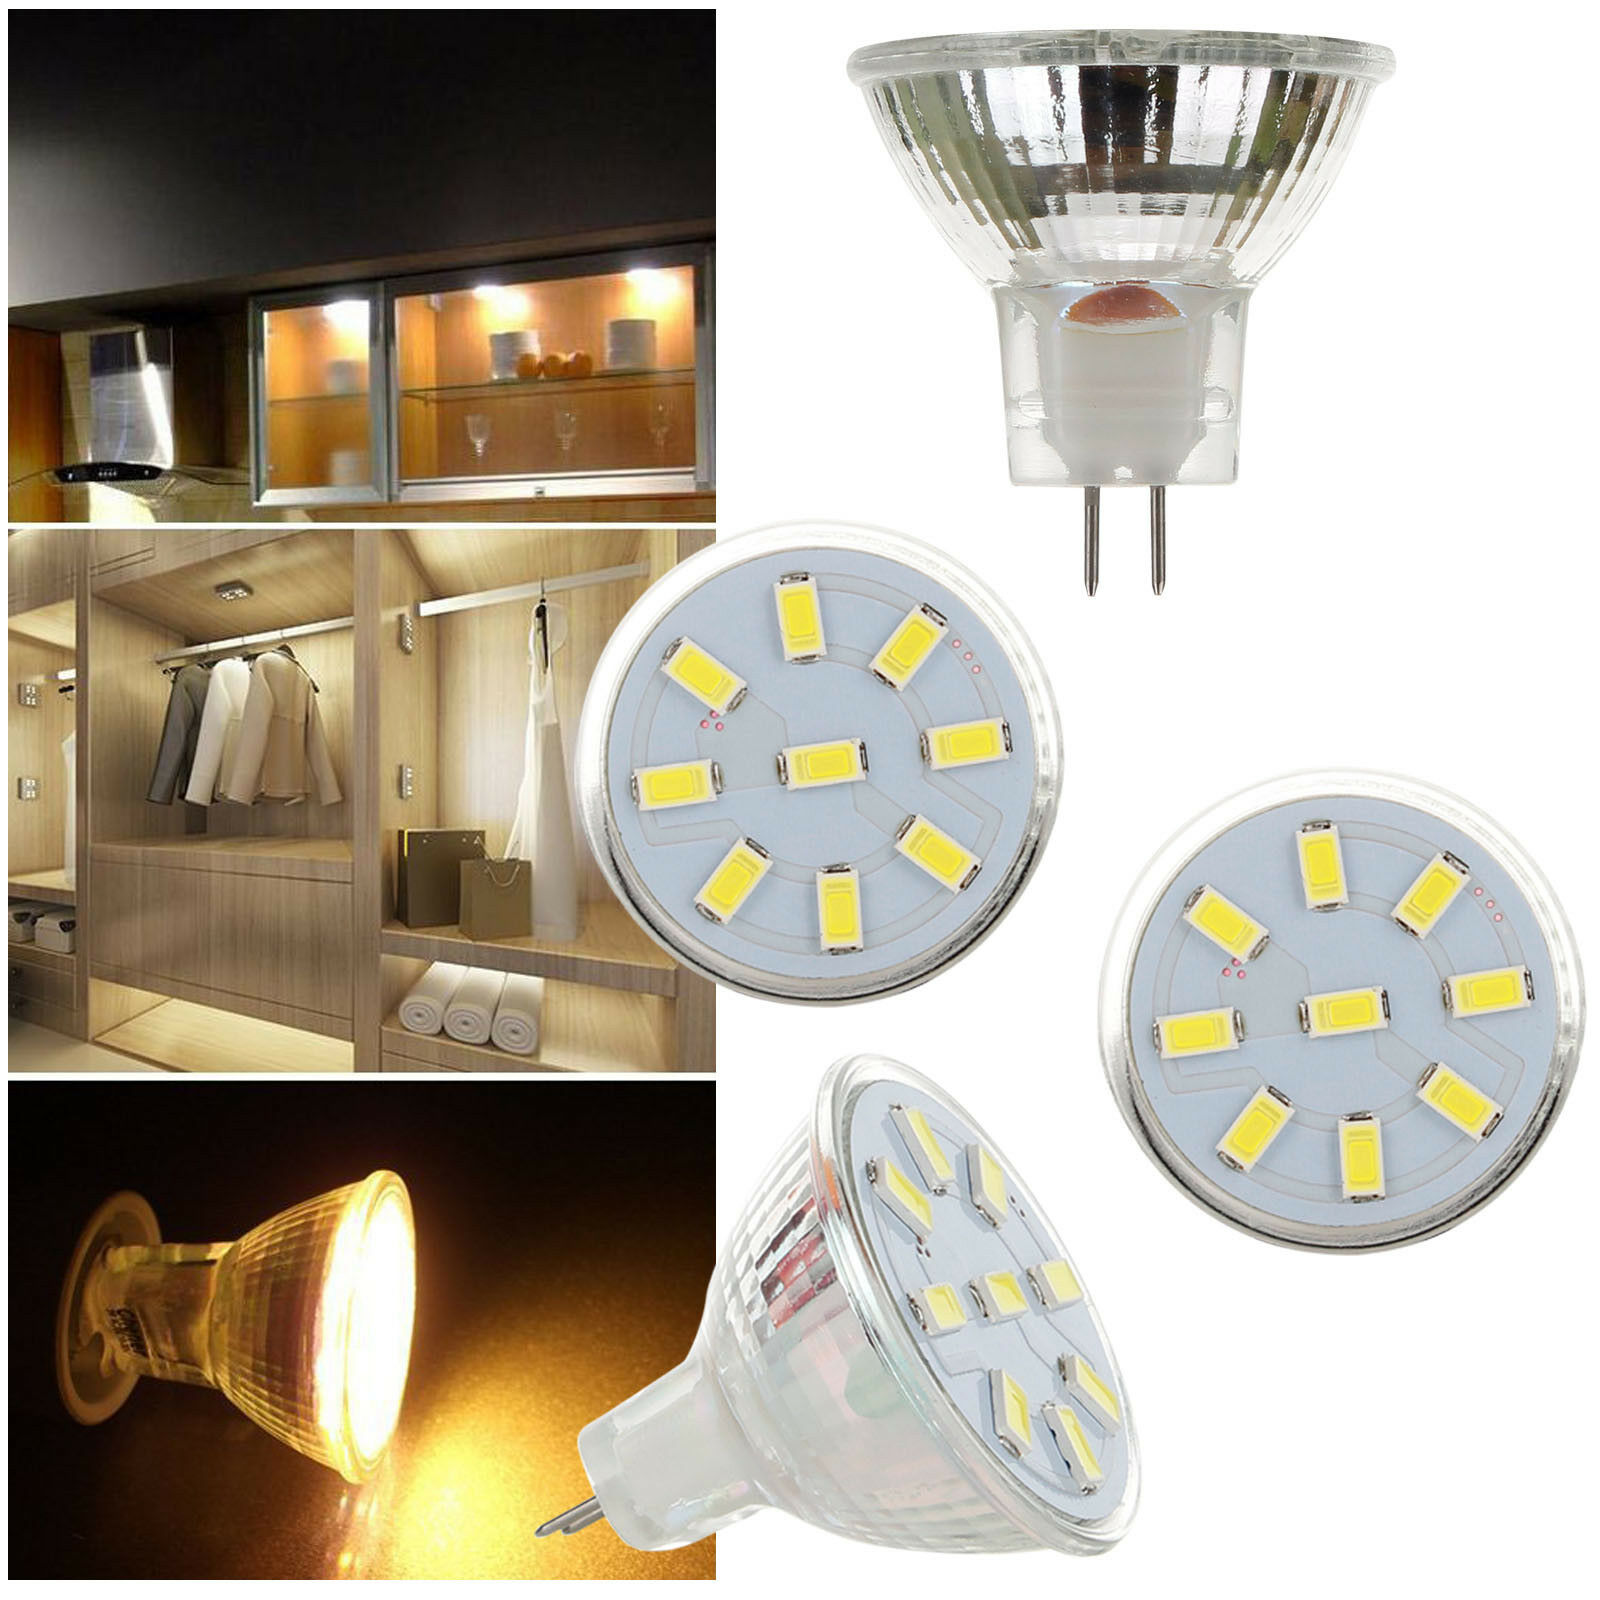 MR11 LED Bulb Spotlight 2W 3W 4W 12-24V 5733 2835 SMD 10W 20W Equivalent Lamp Lampada 35mm Led Spot Light Home Lighting Lamps